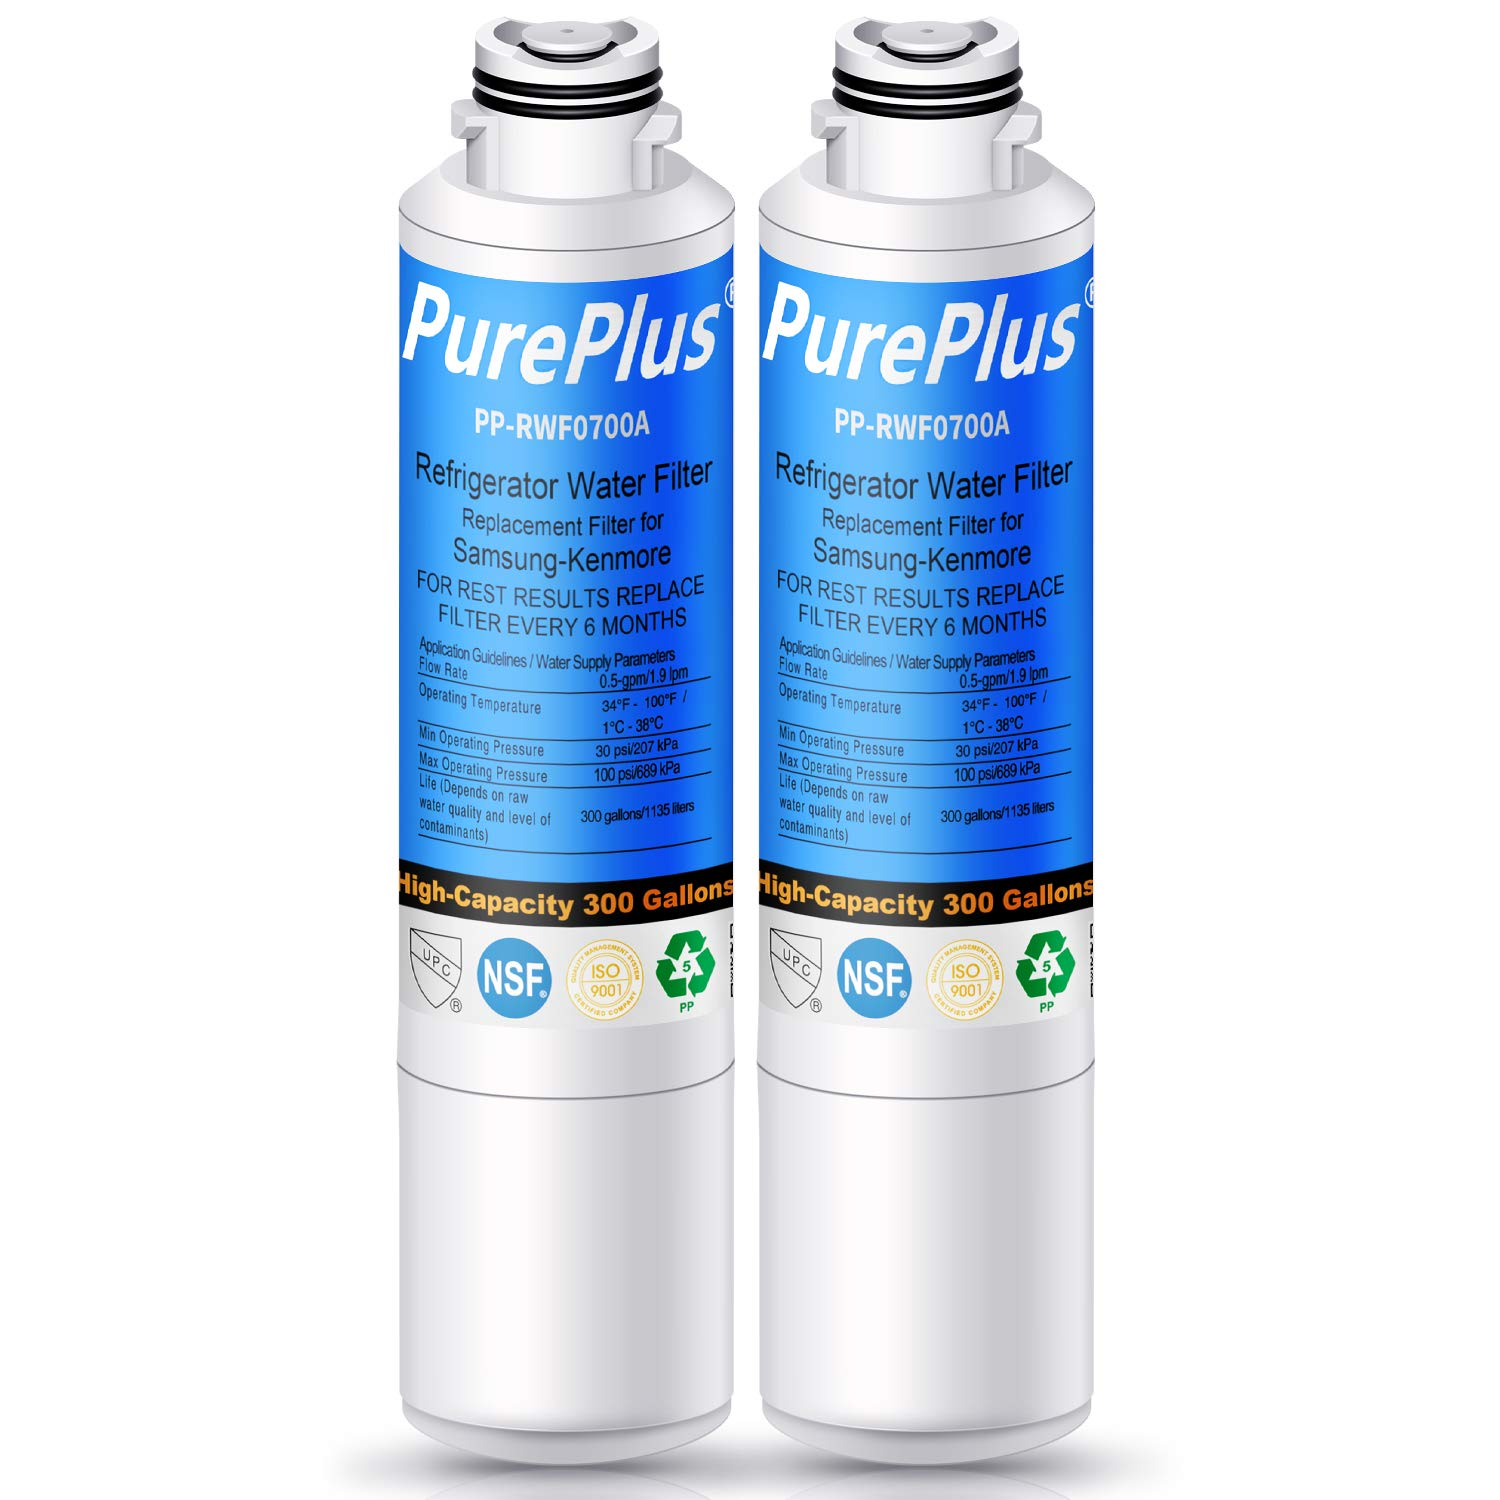 PurePlus DA29-00020B Refrigerator Water Filter, Replacement for Samsung HAF-CIN, HAF-CIN/EXP, DA29-00020A/B, DA97-08006A, RF28HMEDBSR RF4287HARS RF263TEAESG RH22H9010SR RF23J9011SR (Pack of 2)